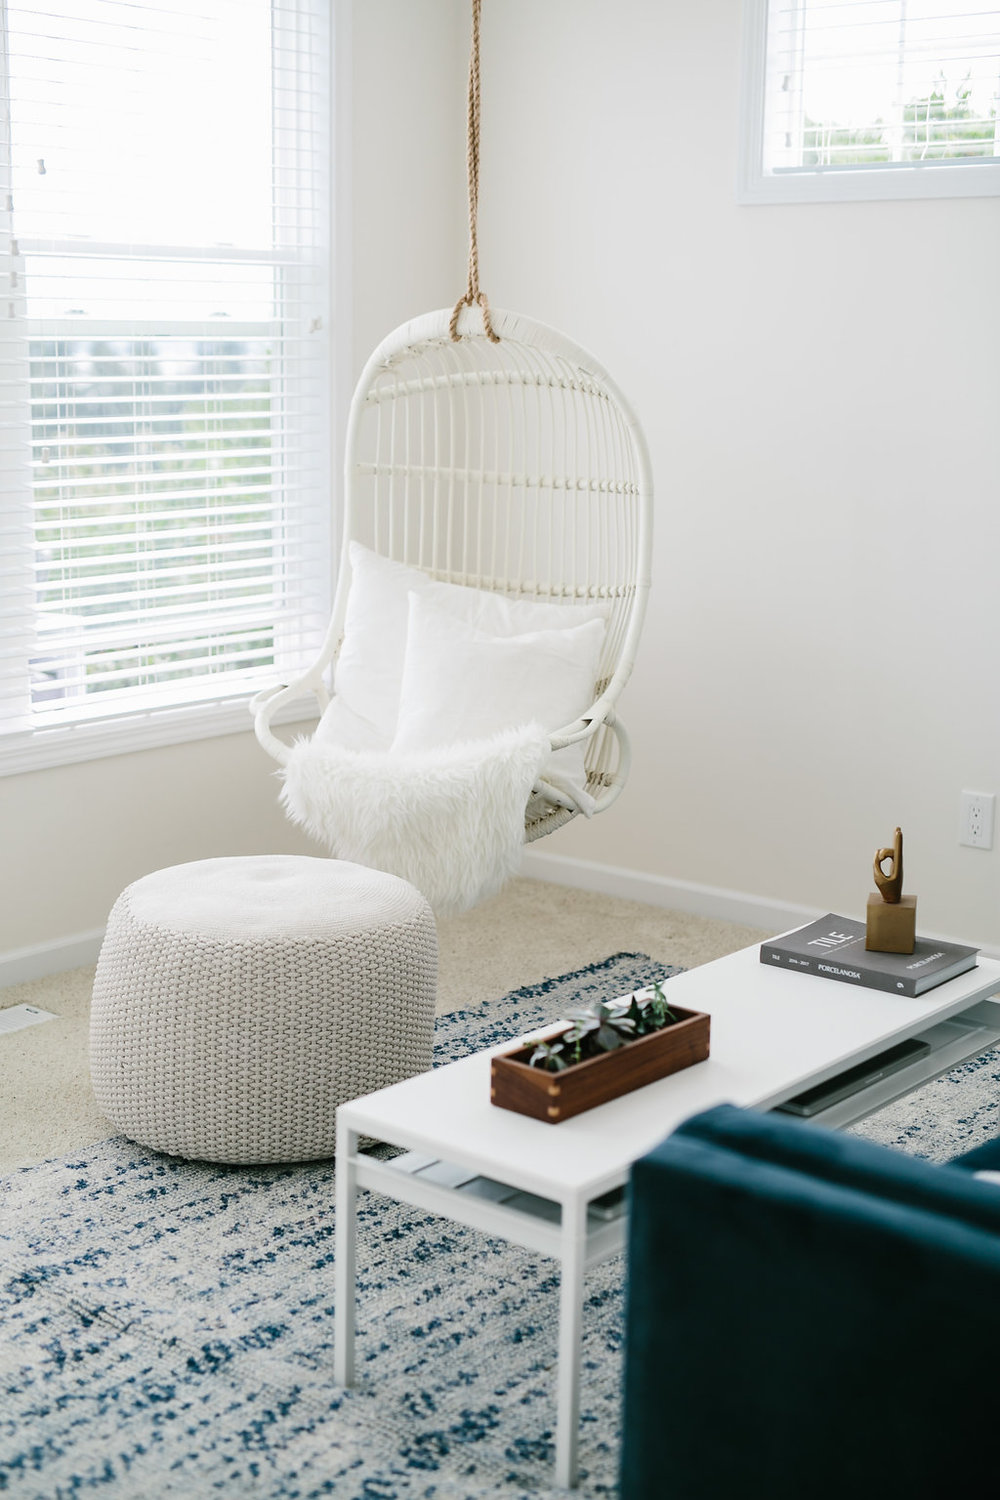 Swinging chair with a white pouf and navy blue rug.